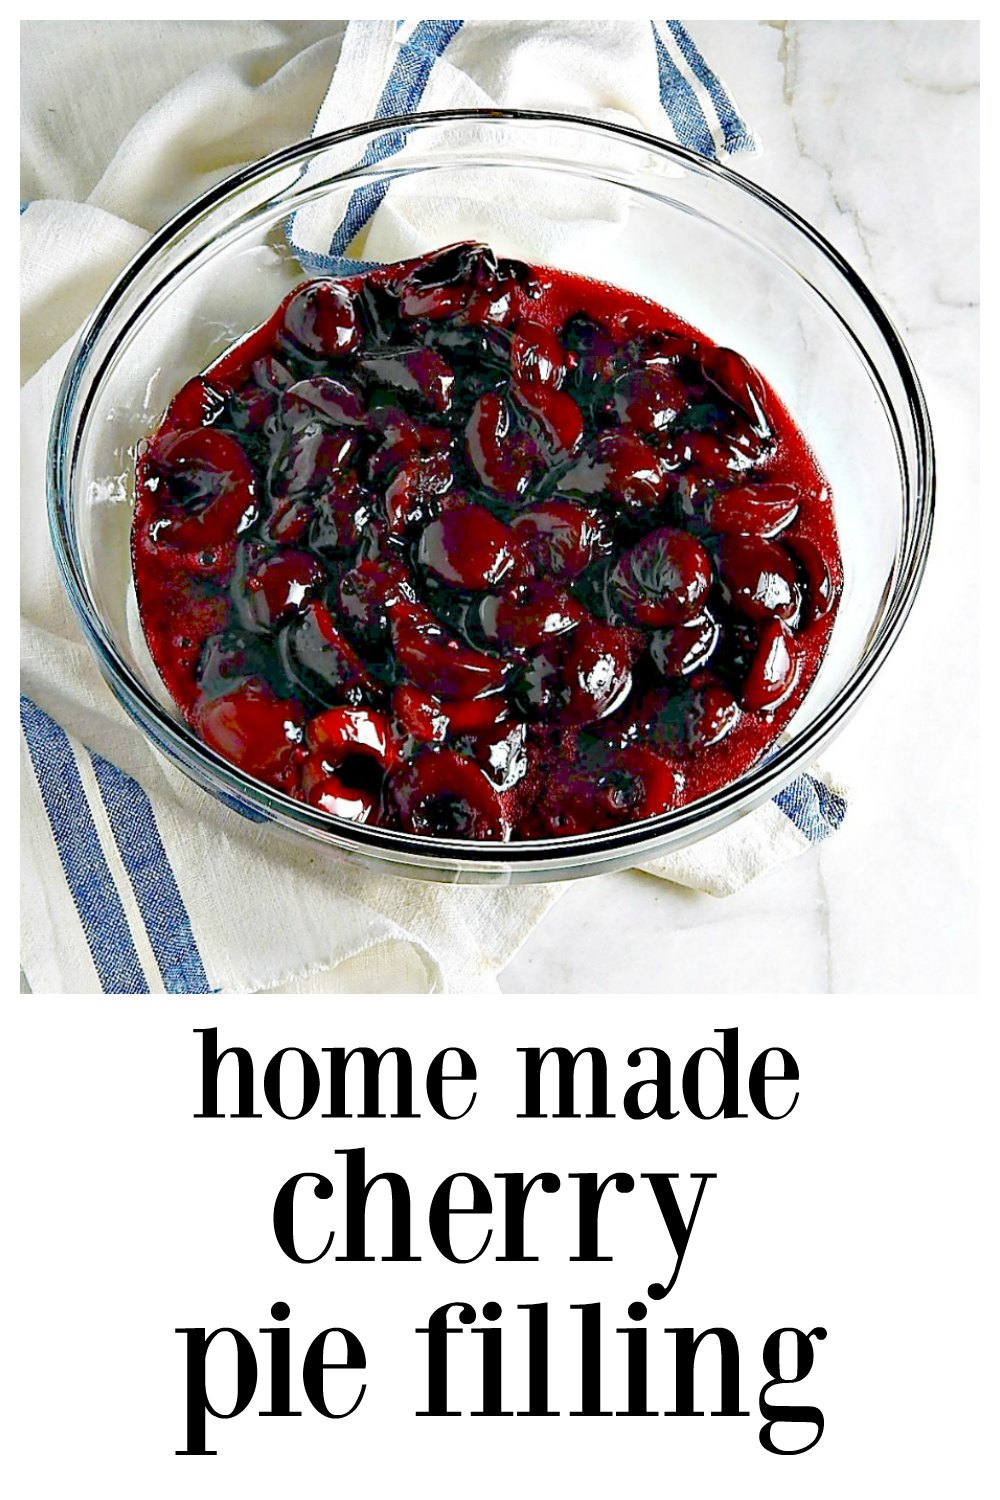 Home-made Cherry Pie Filling